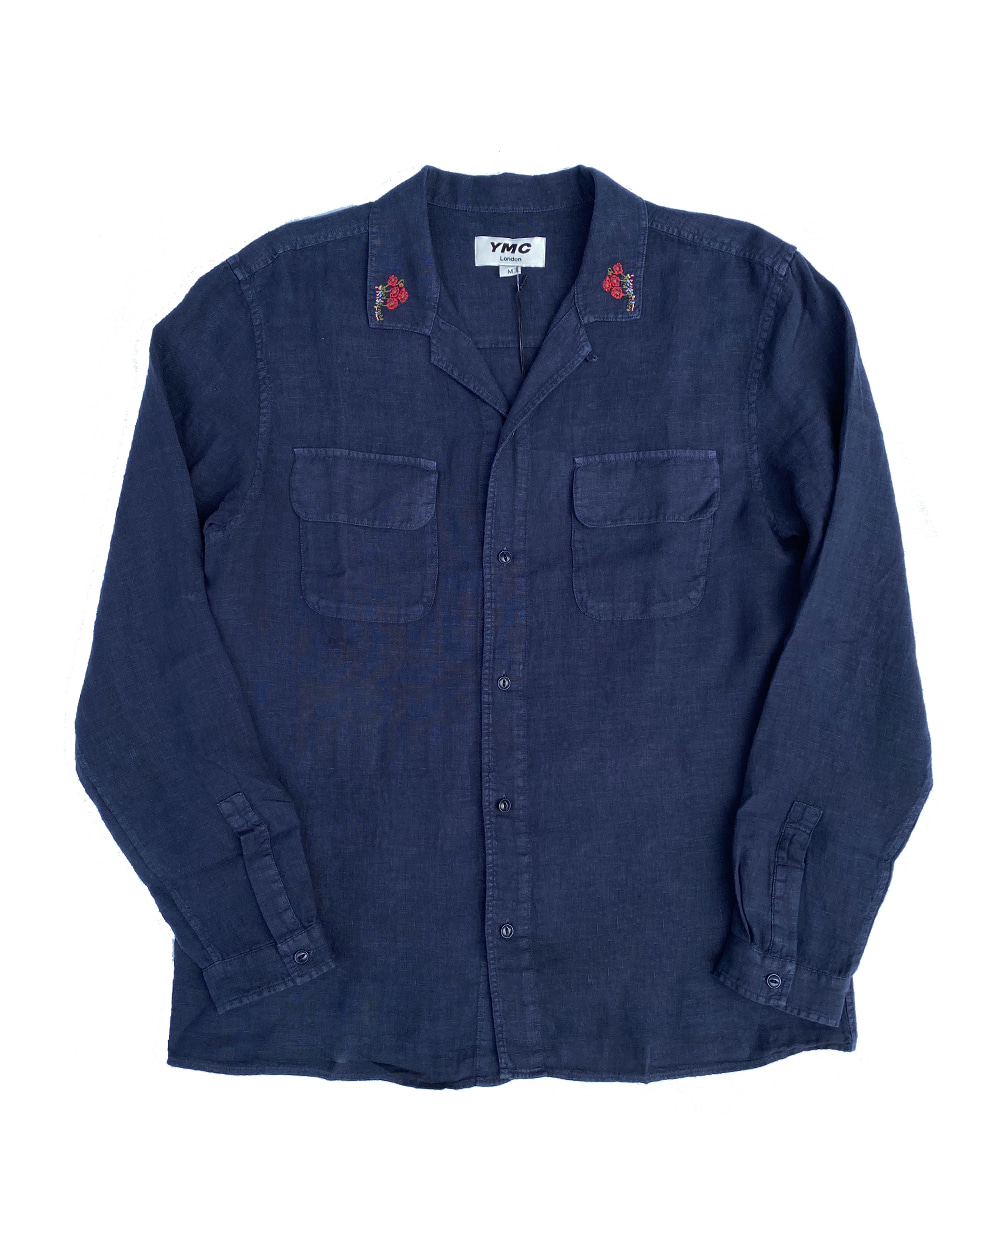 YMC Embroidered Feathers Shirt (Navy)